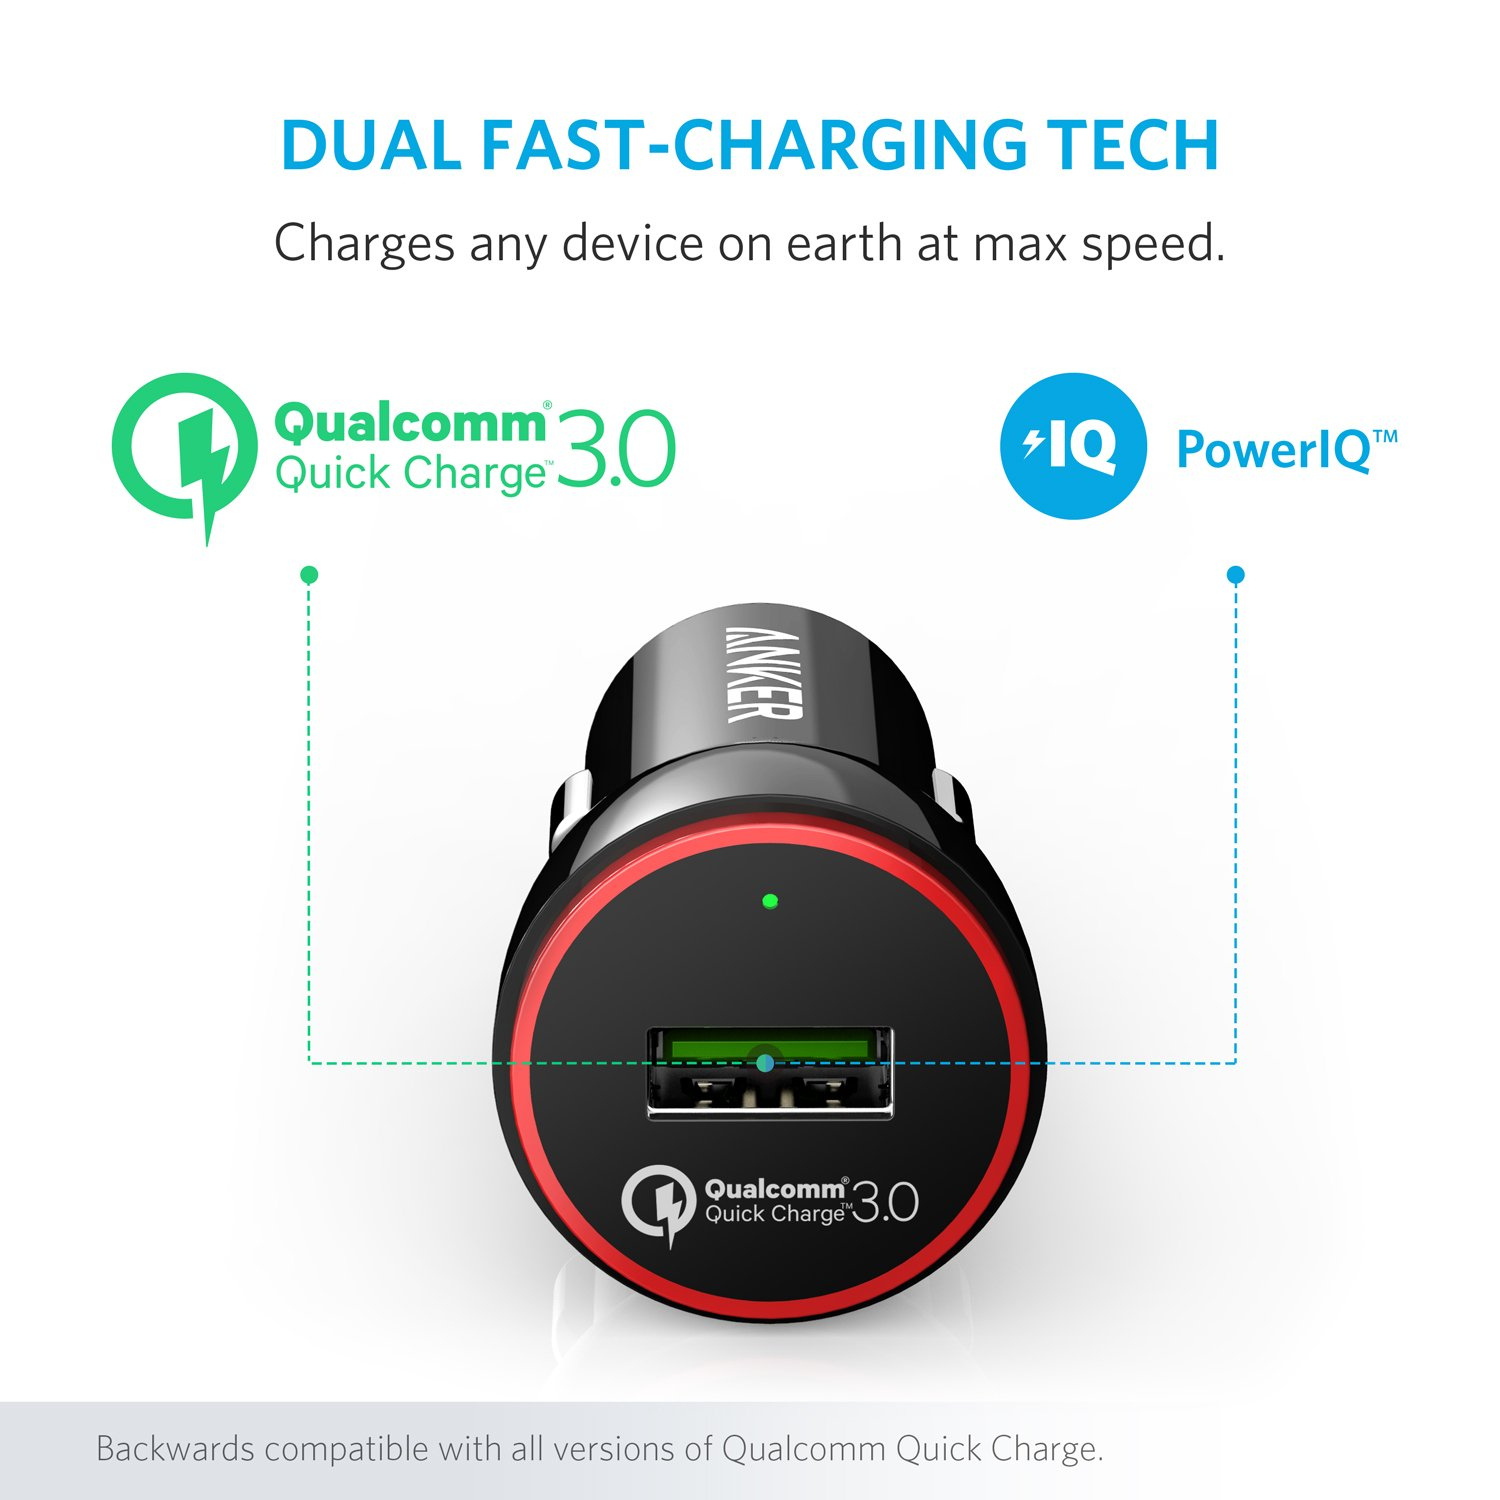 Anker Quick Charge 3.0 24W USB Car Charger, PowerDrive+ 1 for Galaxy S7/S6/Edge/Plus, Note 5/4 and PowerIQ for iPhone X/8/7/6s/Plus, iPad Pro/Air 2/mini, LG, Nexus, HTC and More by Anker (Image #4)